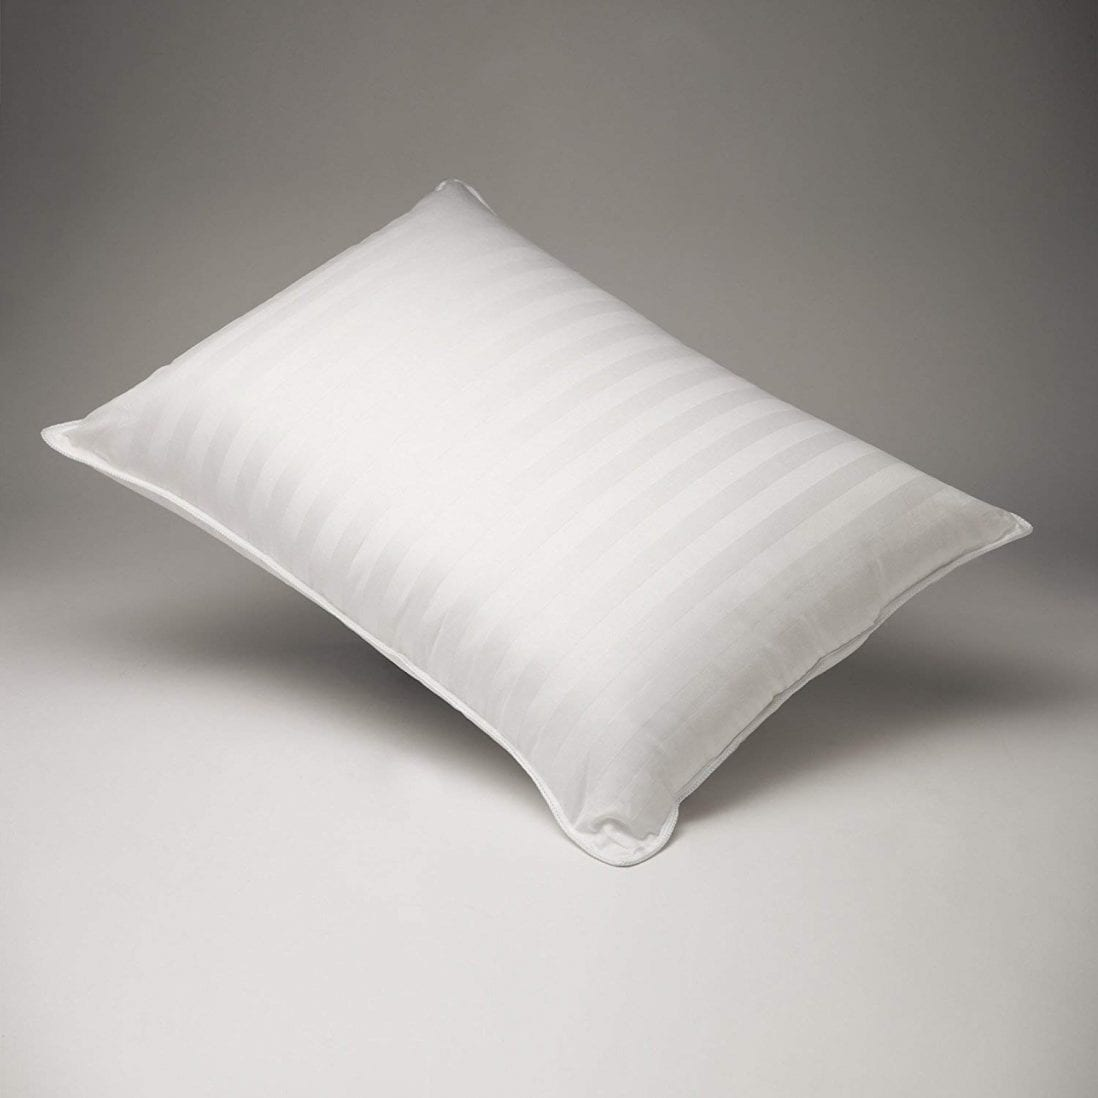 FineFeather 100% Hungarian White Goose Down Pillow Review and Buying Guide by www.dailysleep.com